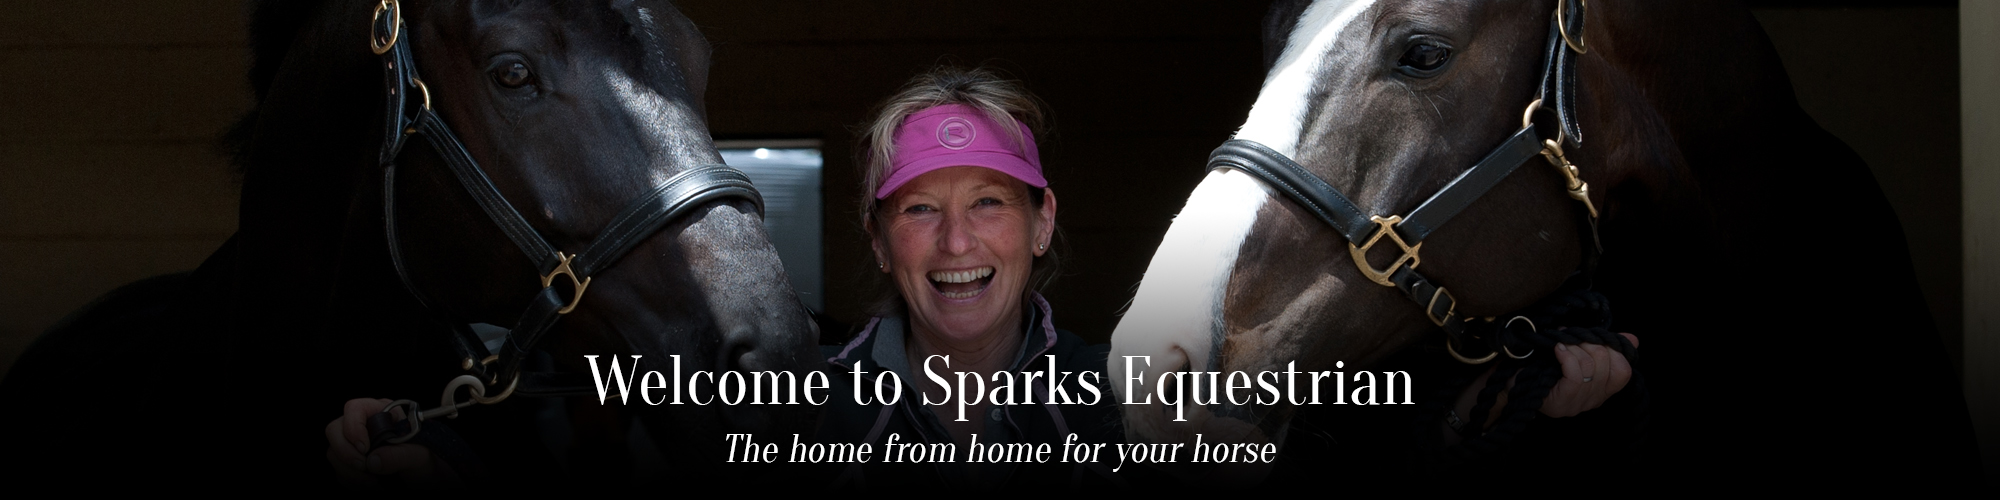 Sparks Equestrian - The home from home for your horse